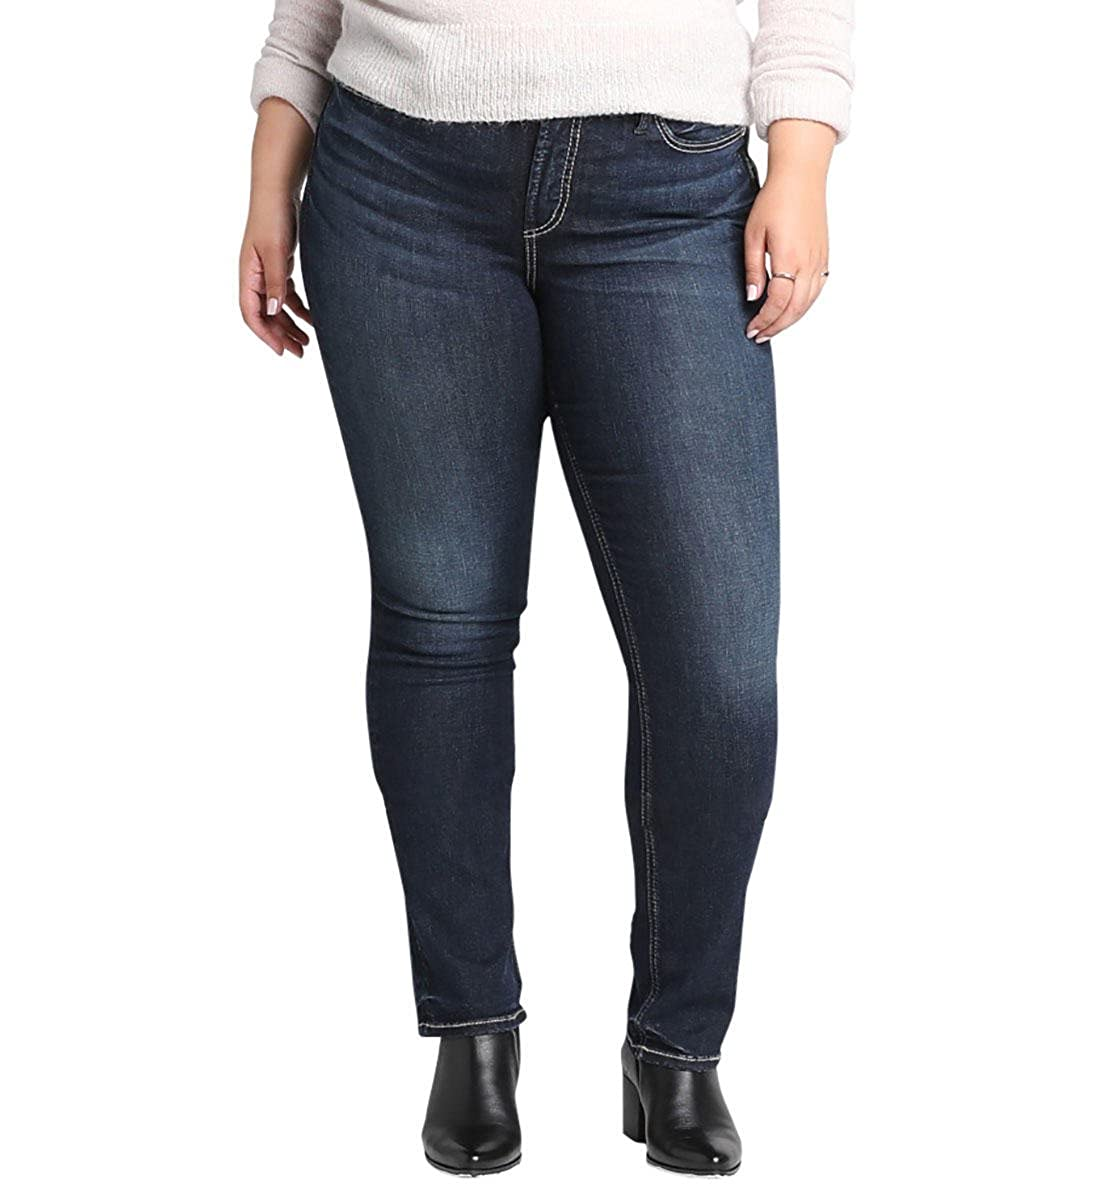 Dark Heritage Wash Silver Jeans Co. Womens Plus Size Avery Curvy Fit HighRise Straight Leg Jeans Jeans